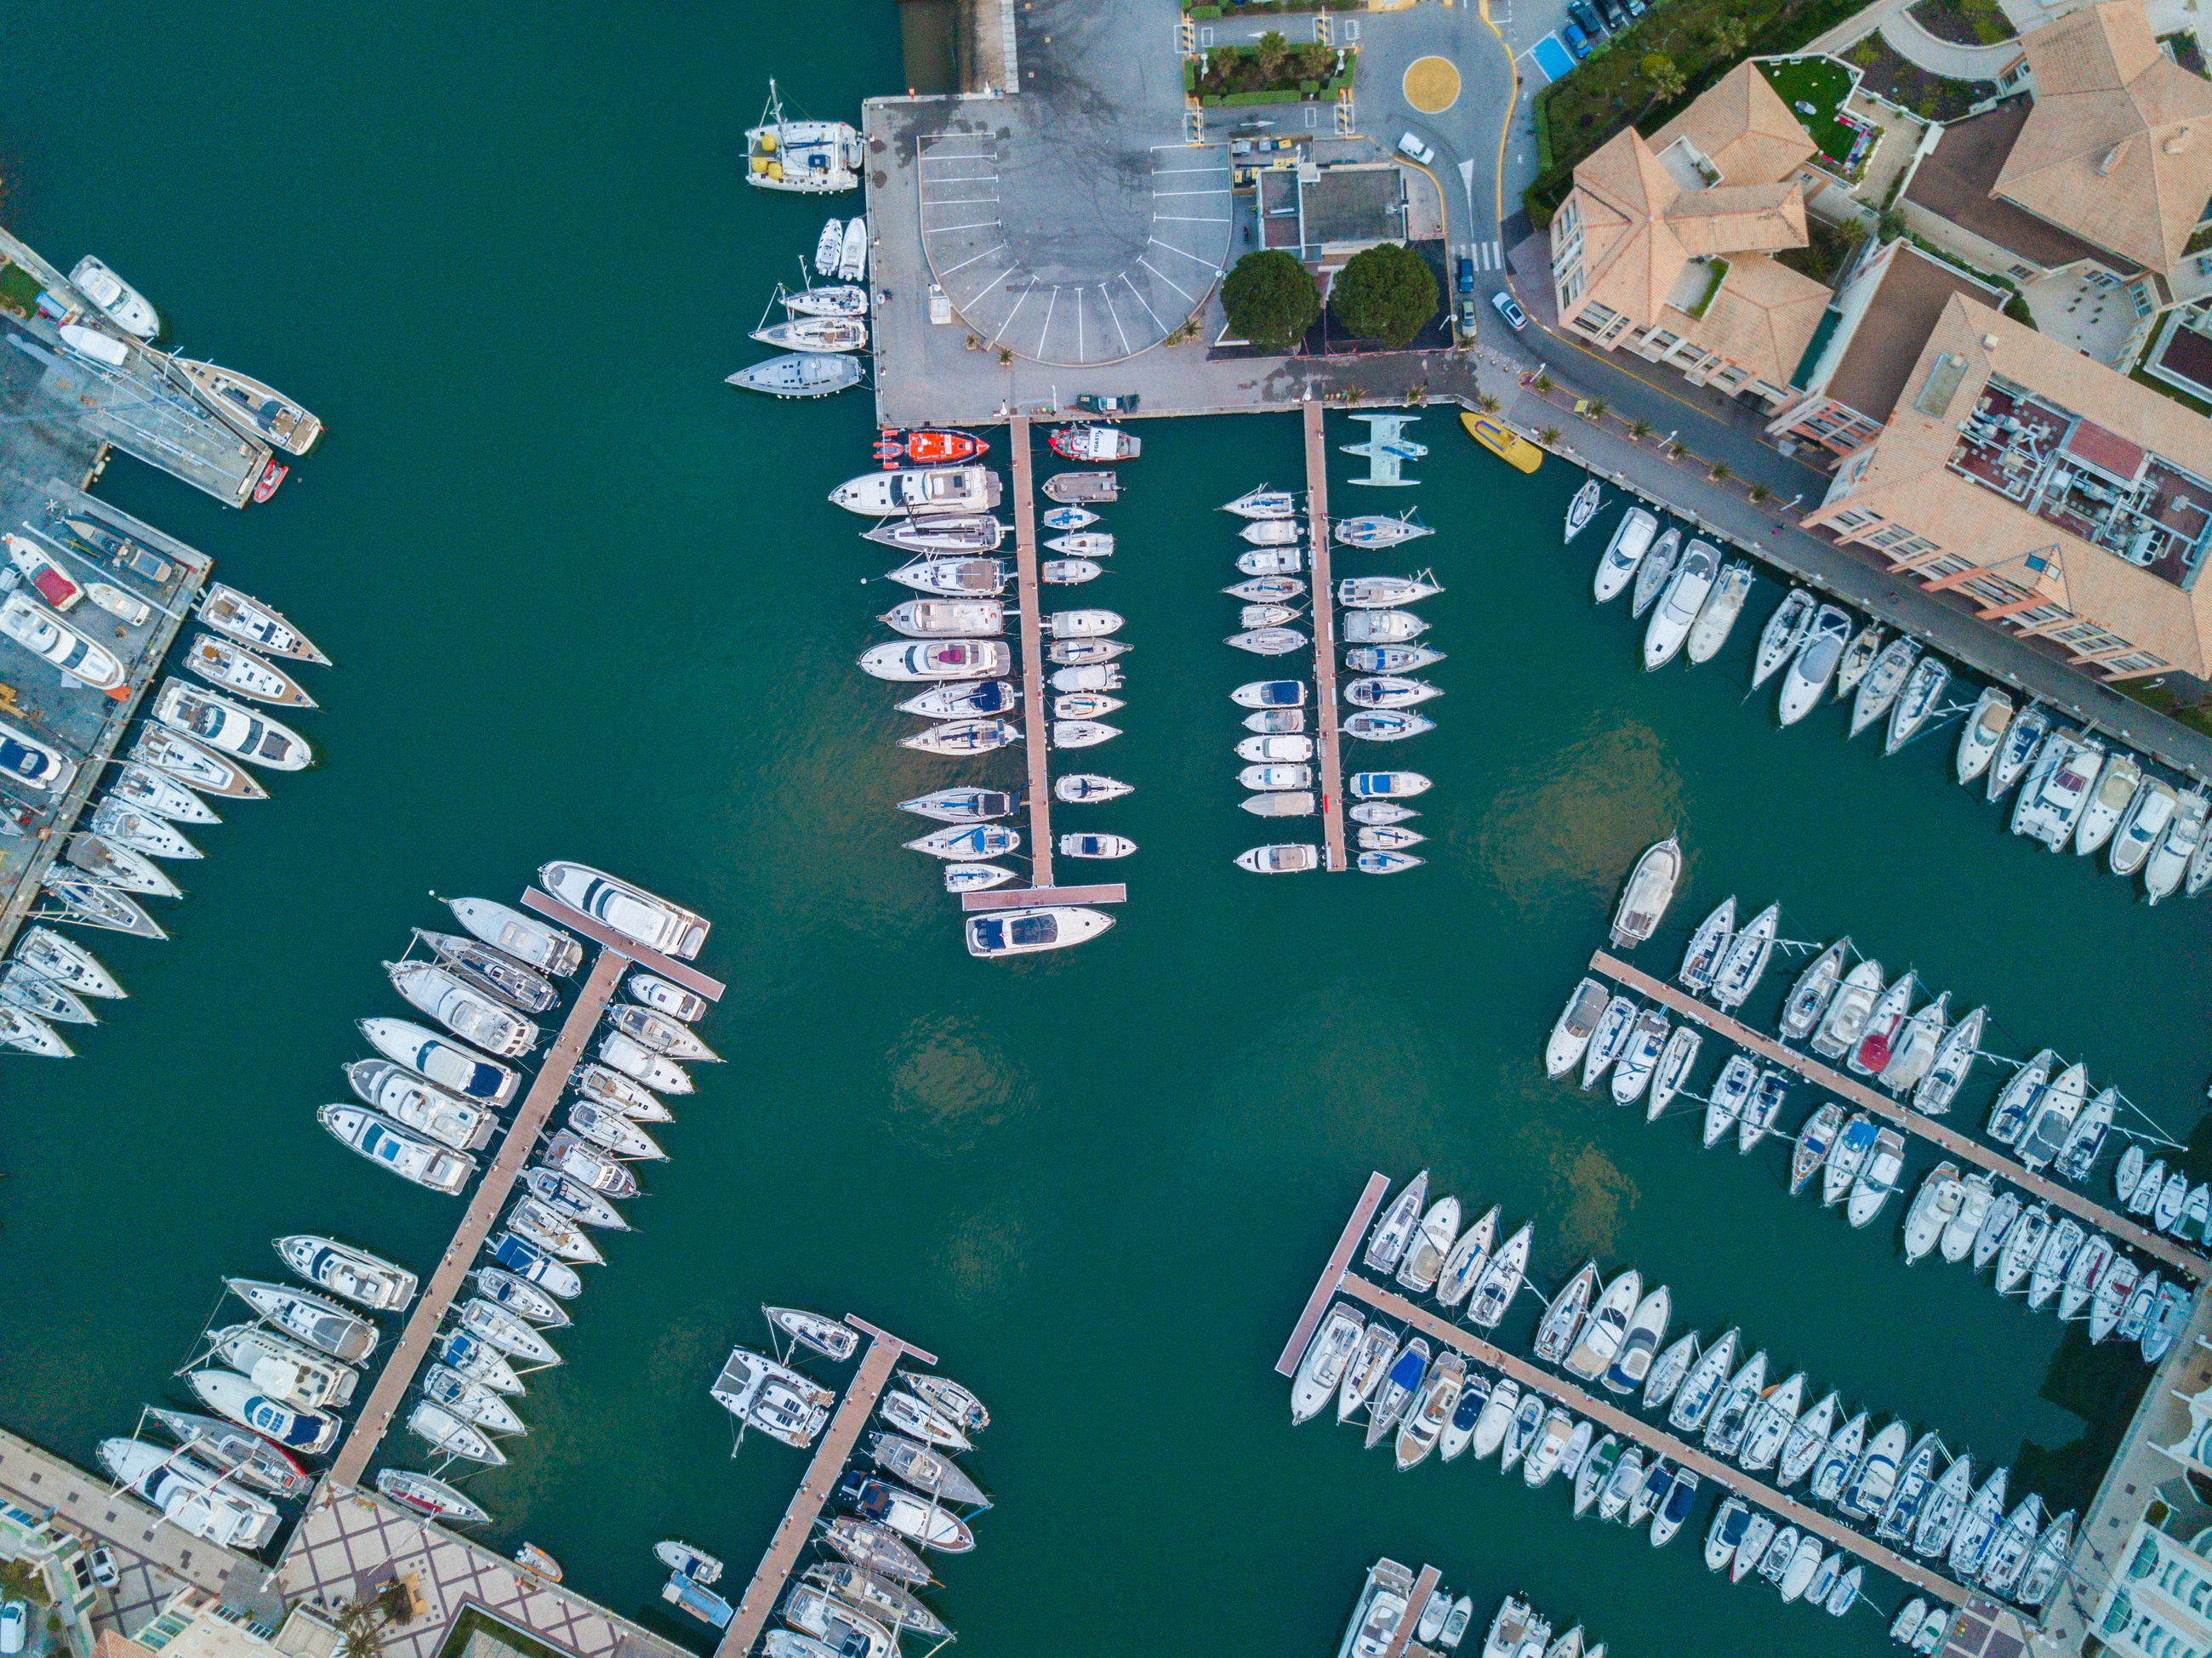 water, architecture, transportation, high angle view, building exterior, nautical vessel, no people, built structure, nature, waterfront, mode of transportation, day, outdoors, building, commercial dock, industry, sea, travel, shipping, turquoise colored